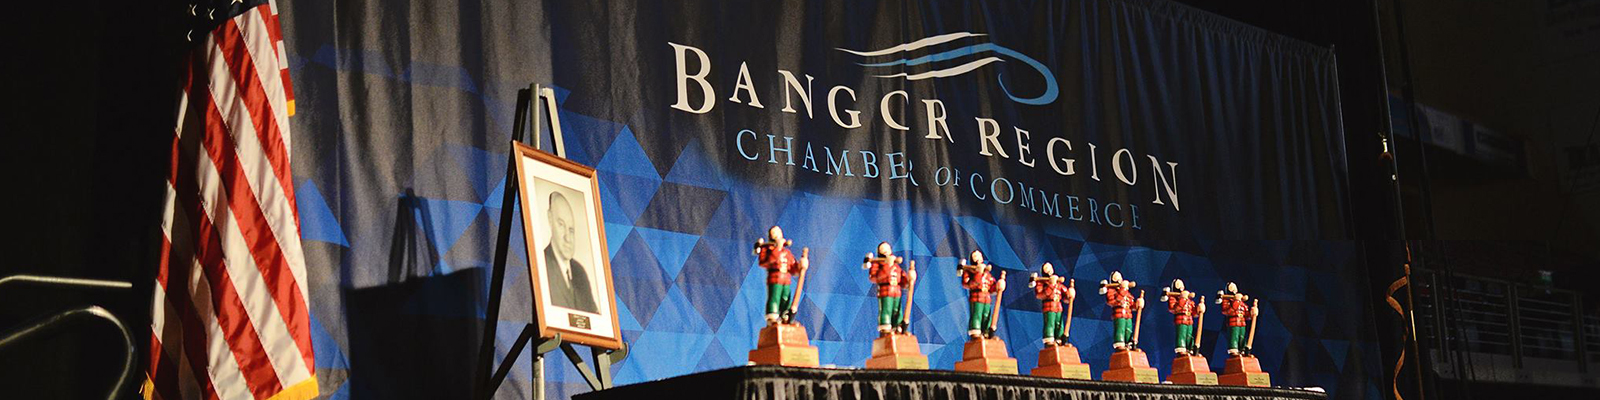 Bangor Region Chamber of Commerce